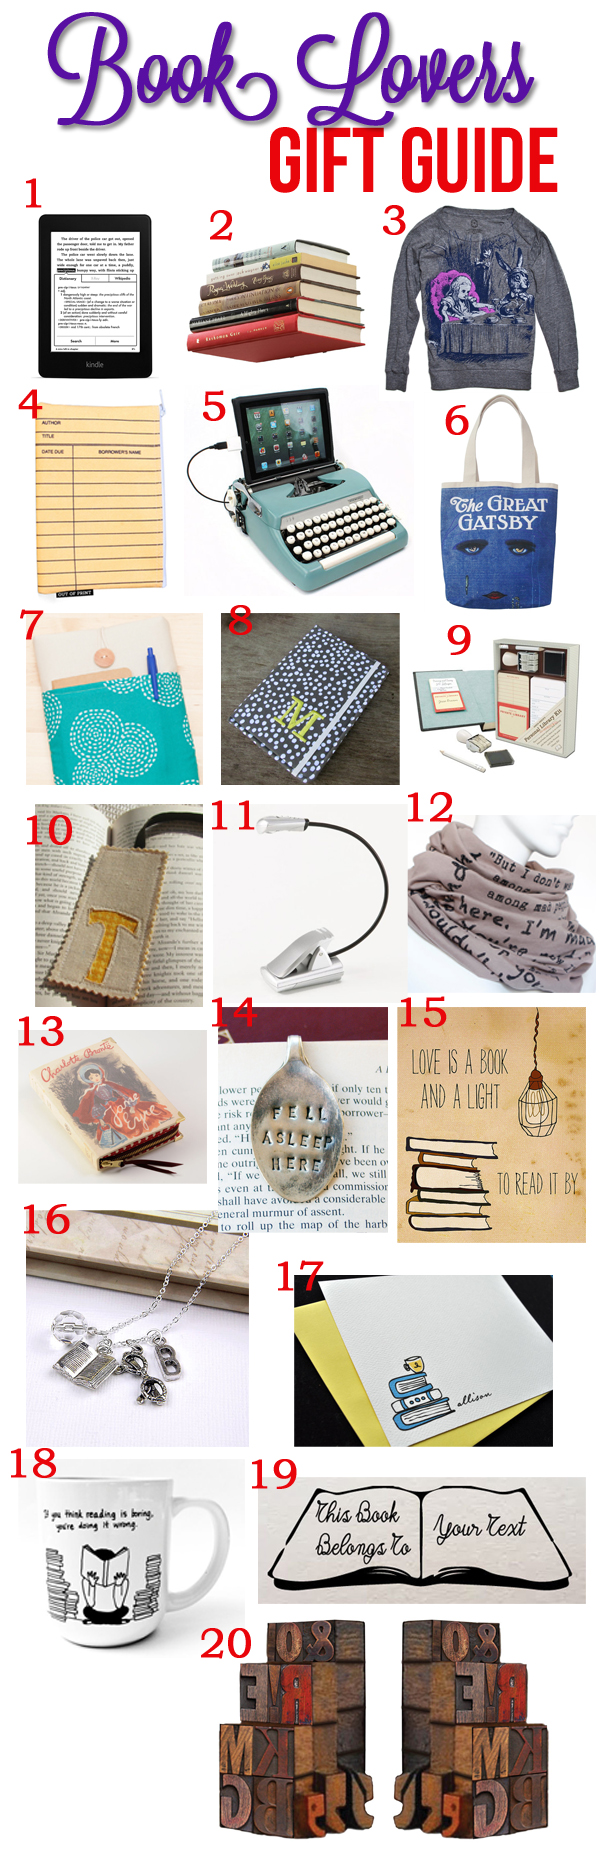 A gift guide for book lovers!